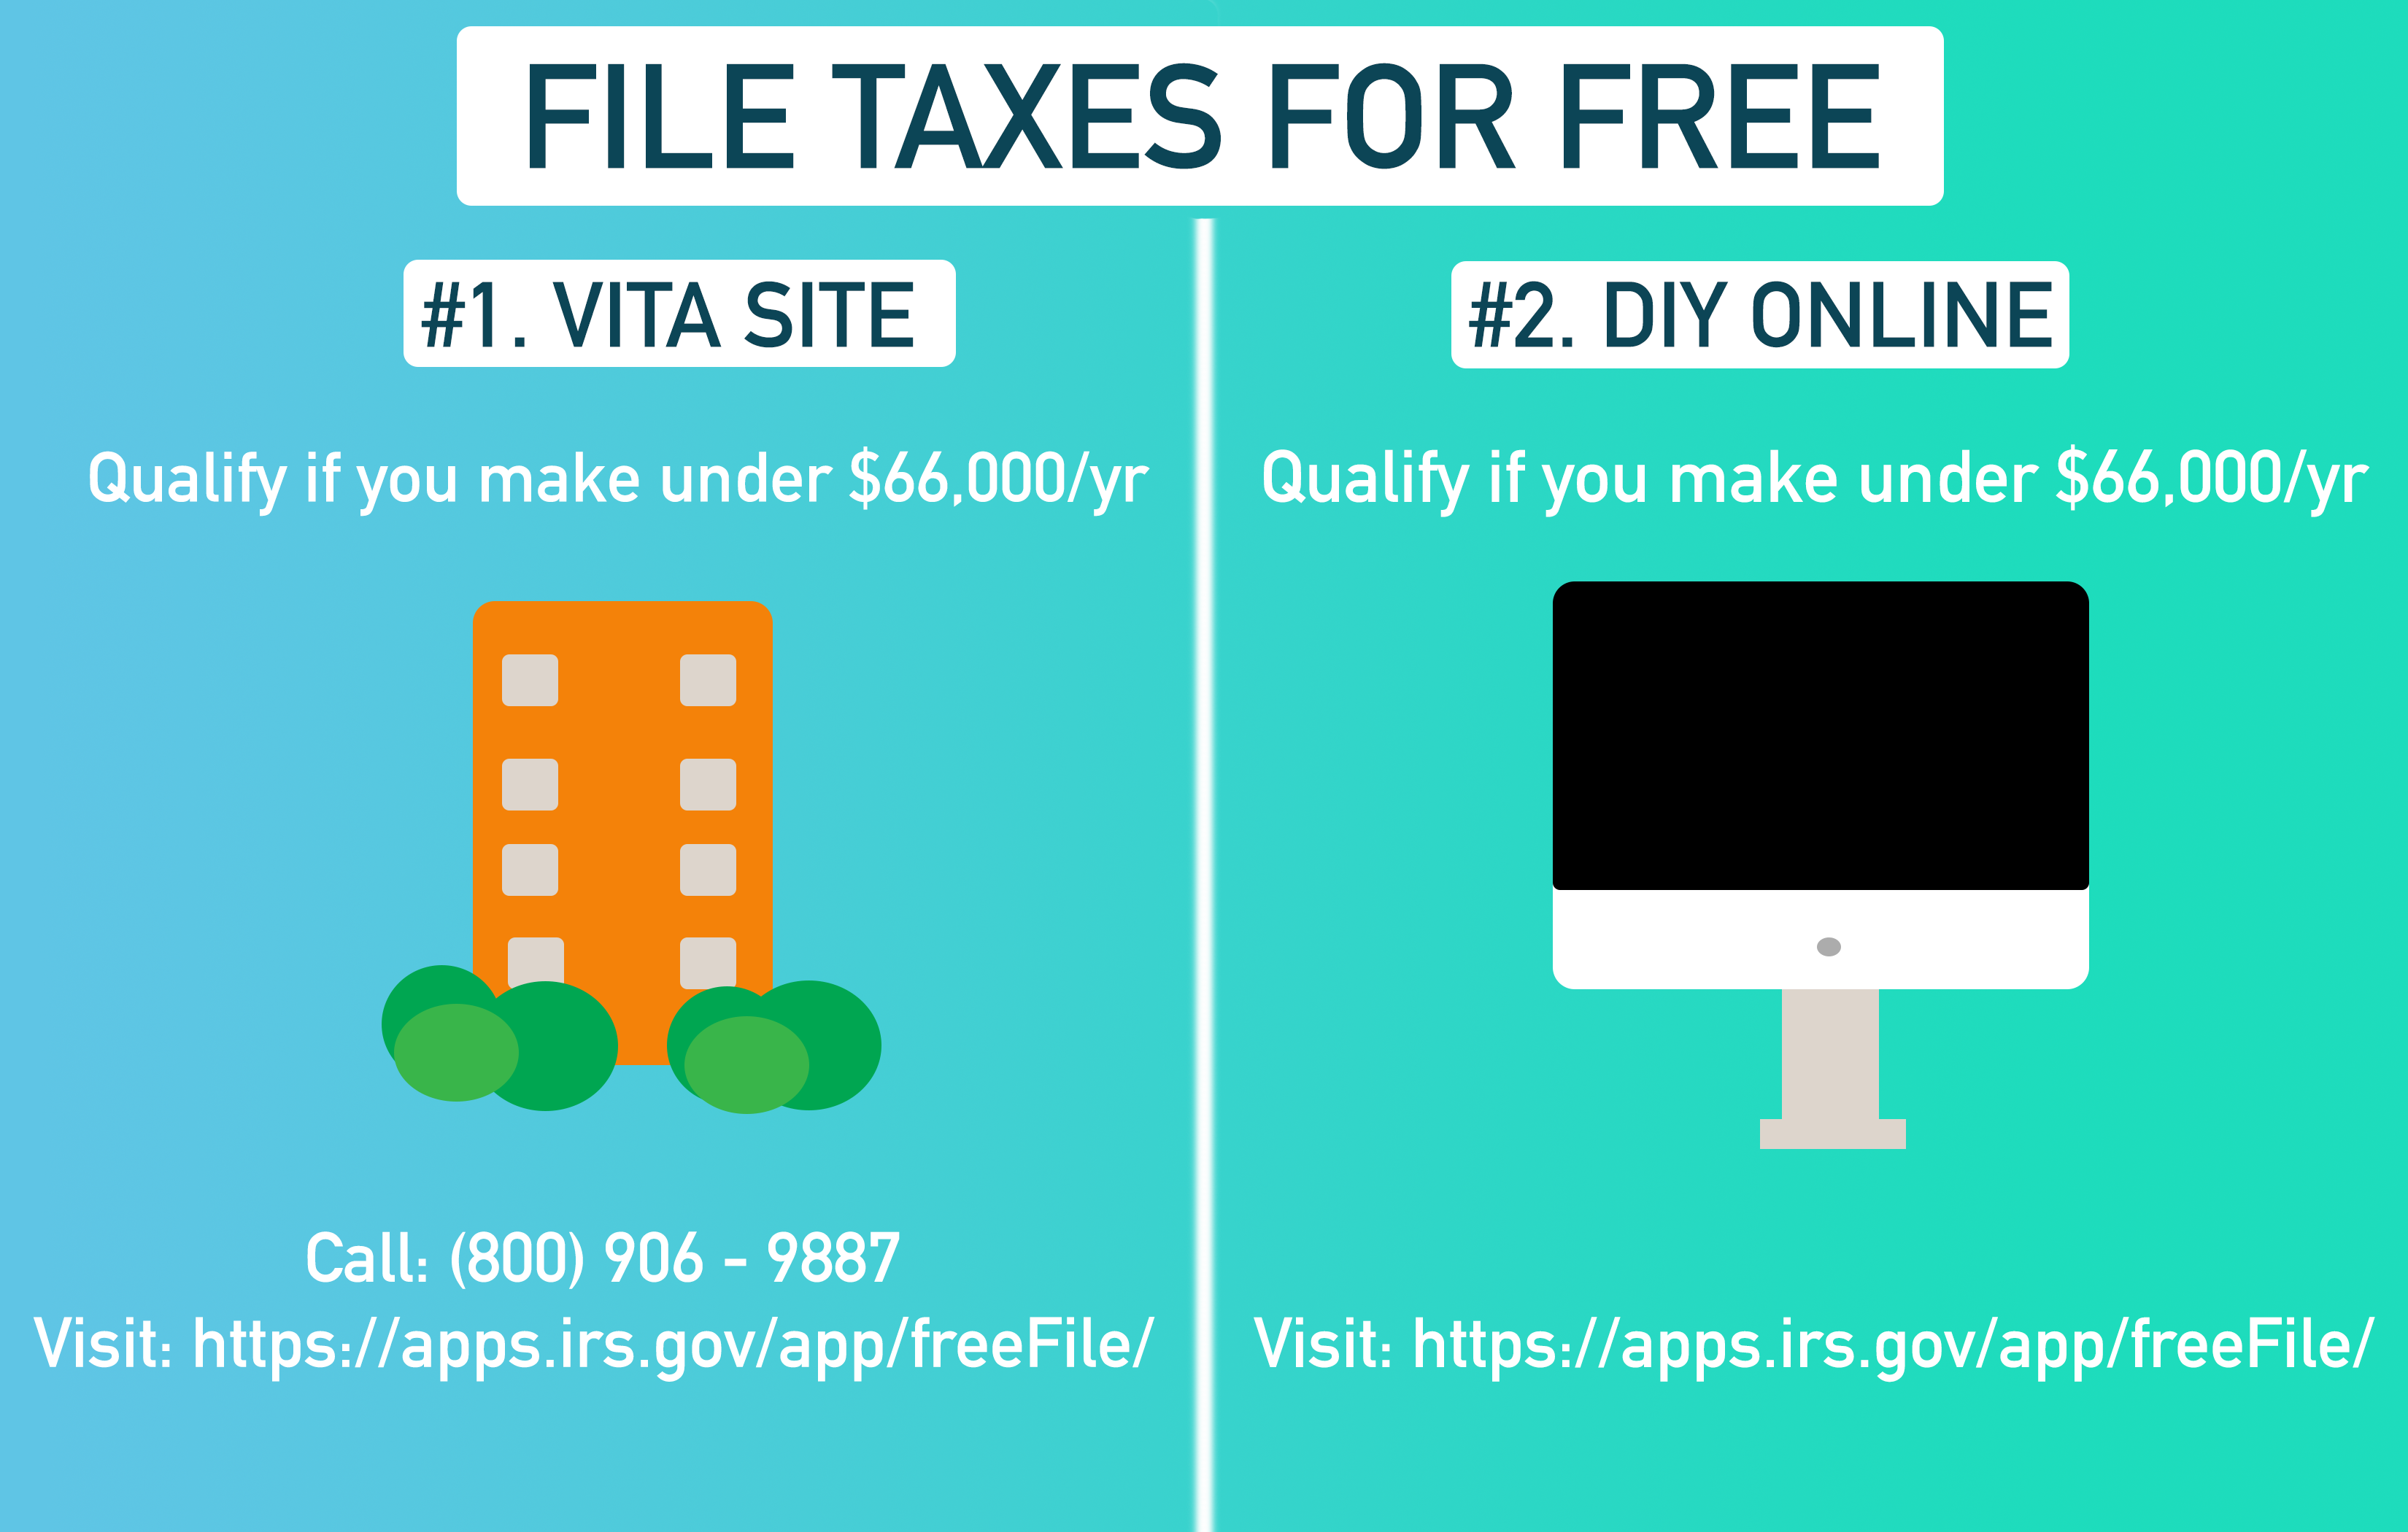 File Your Taxes for Free Ninety-Nine!